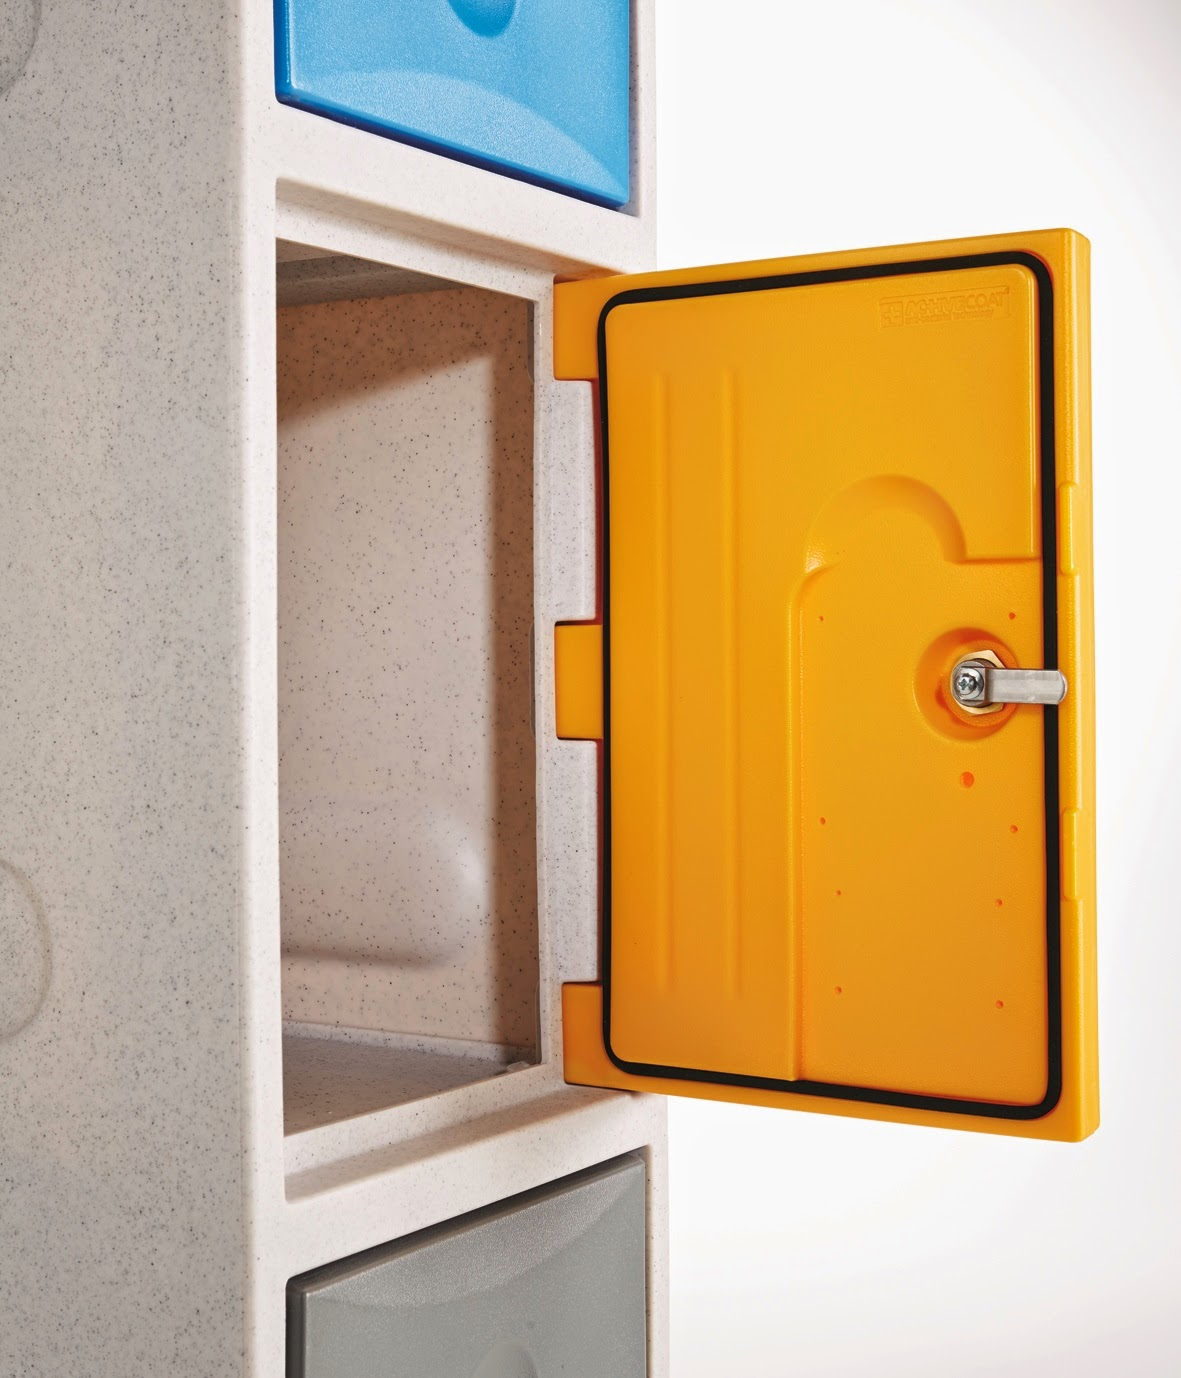 Ultrabox Vandal Resistant Plastic Lockers from Shelf Space Limited